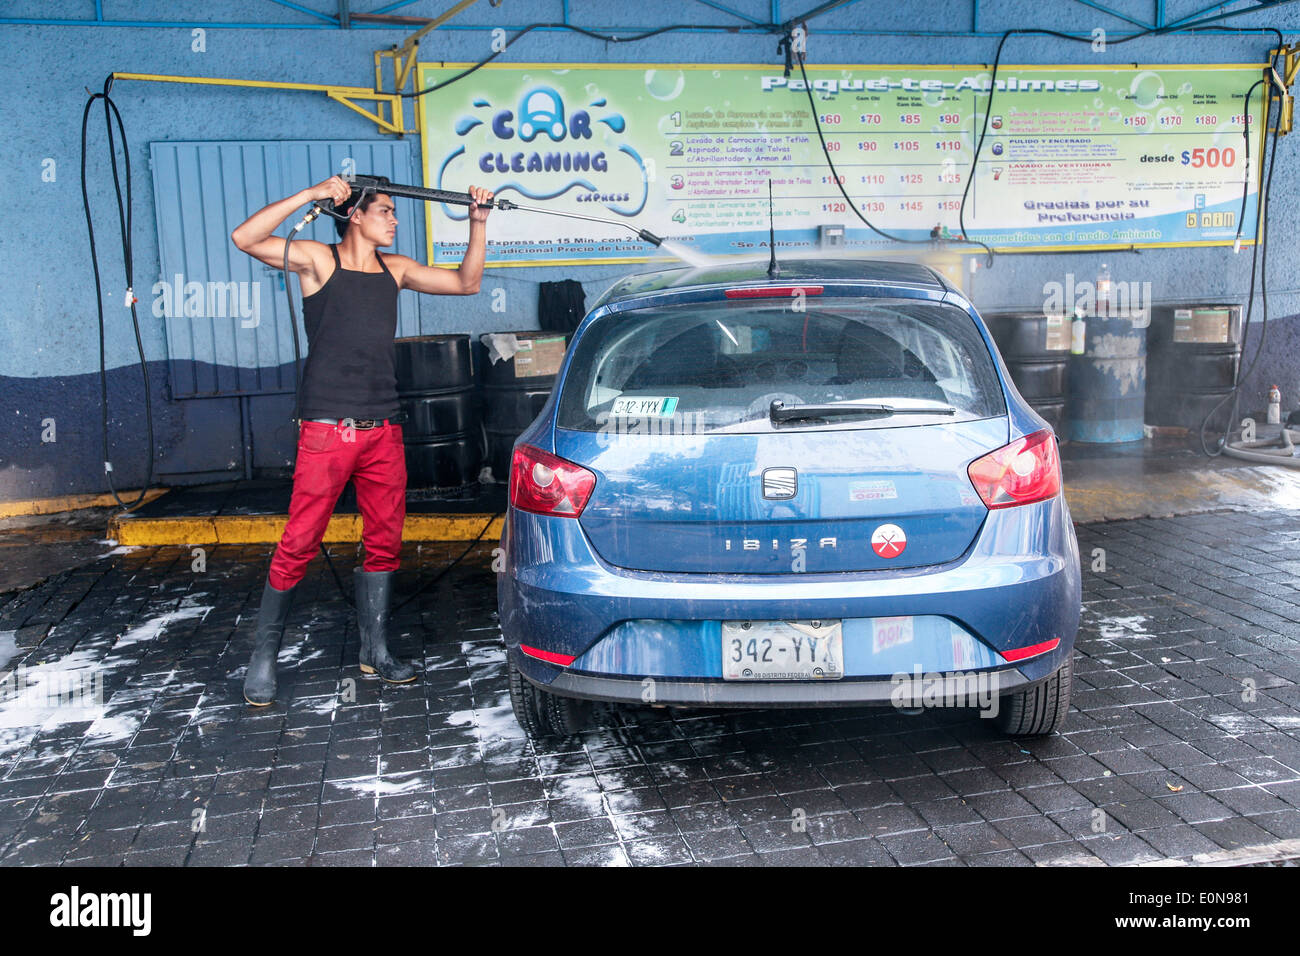 young Mexican man moves like a dancer as he washes a shiny blue Ibiza hatchback luxury car by hand at a Mexico City car wash - Stock Image